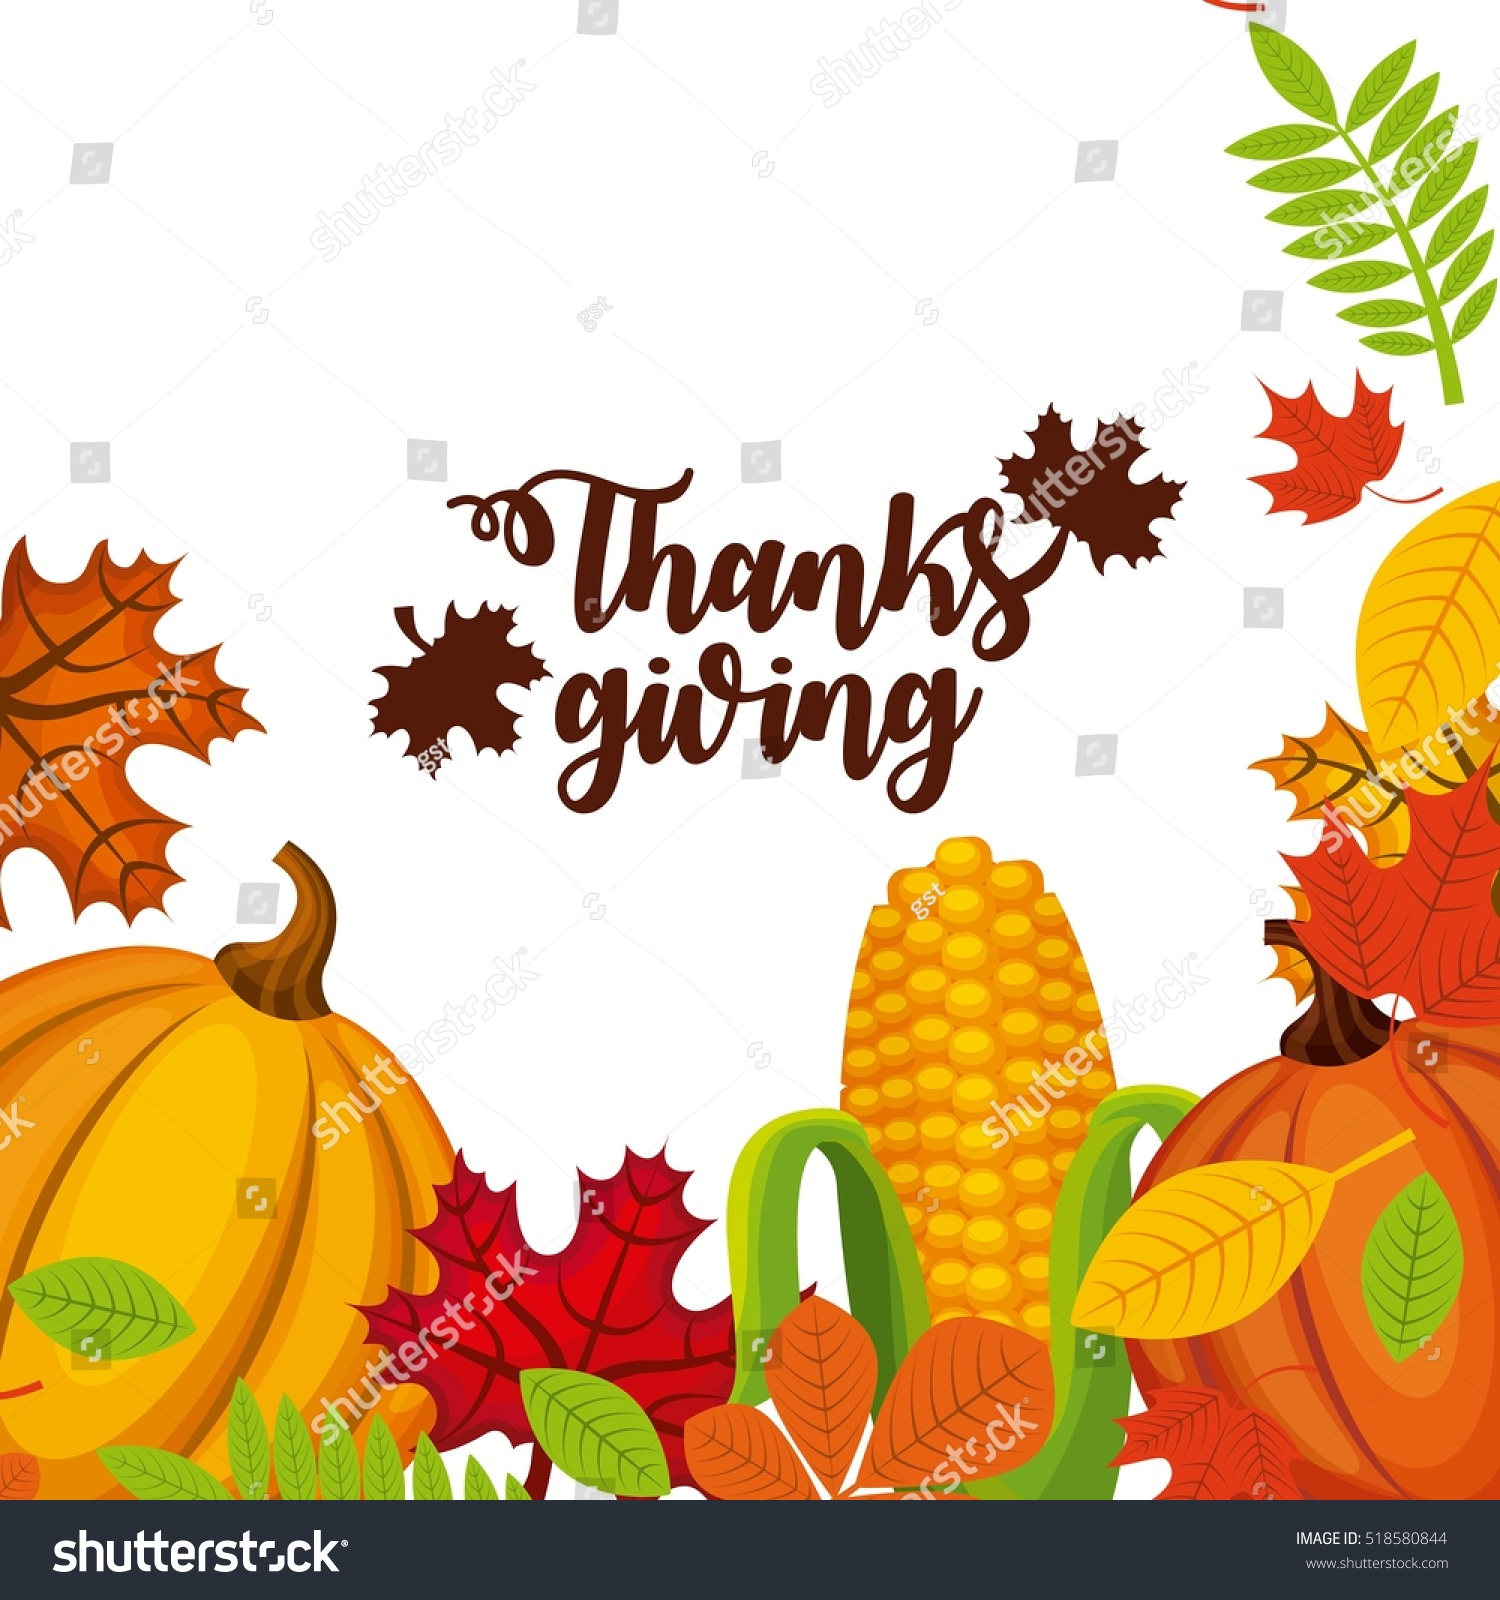 Happy thanksgiving card decorative pumpkin dry stock vector happy thanksgiving card with decorative pumpkin and dry leaves colorful design vector illustration kristyandbryce Choice Image